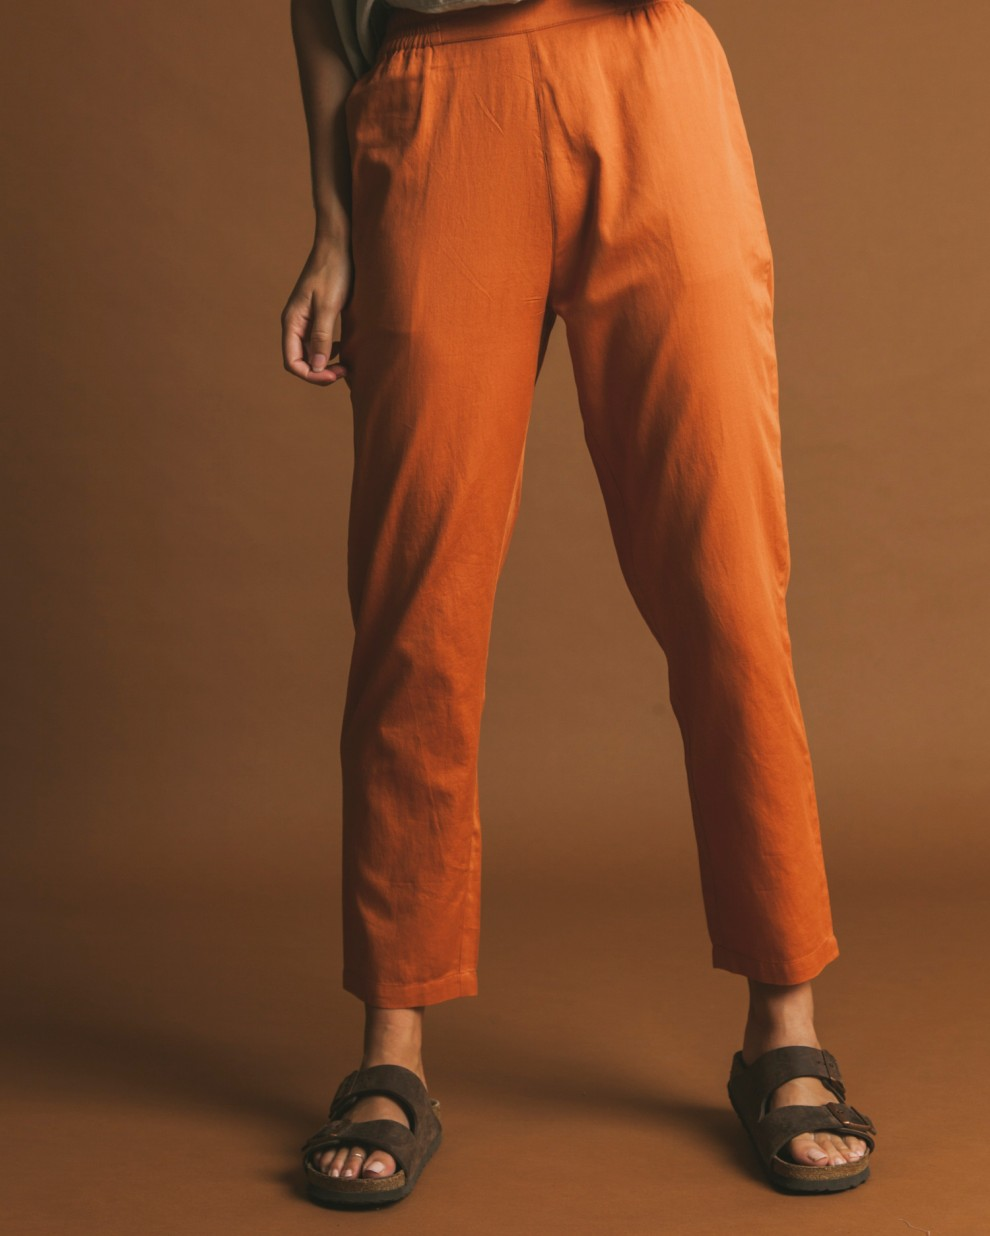 Terracotta Ella pants